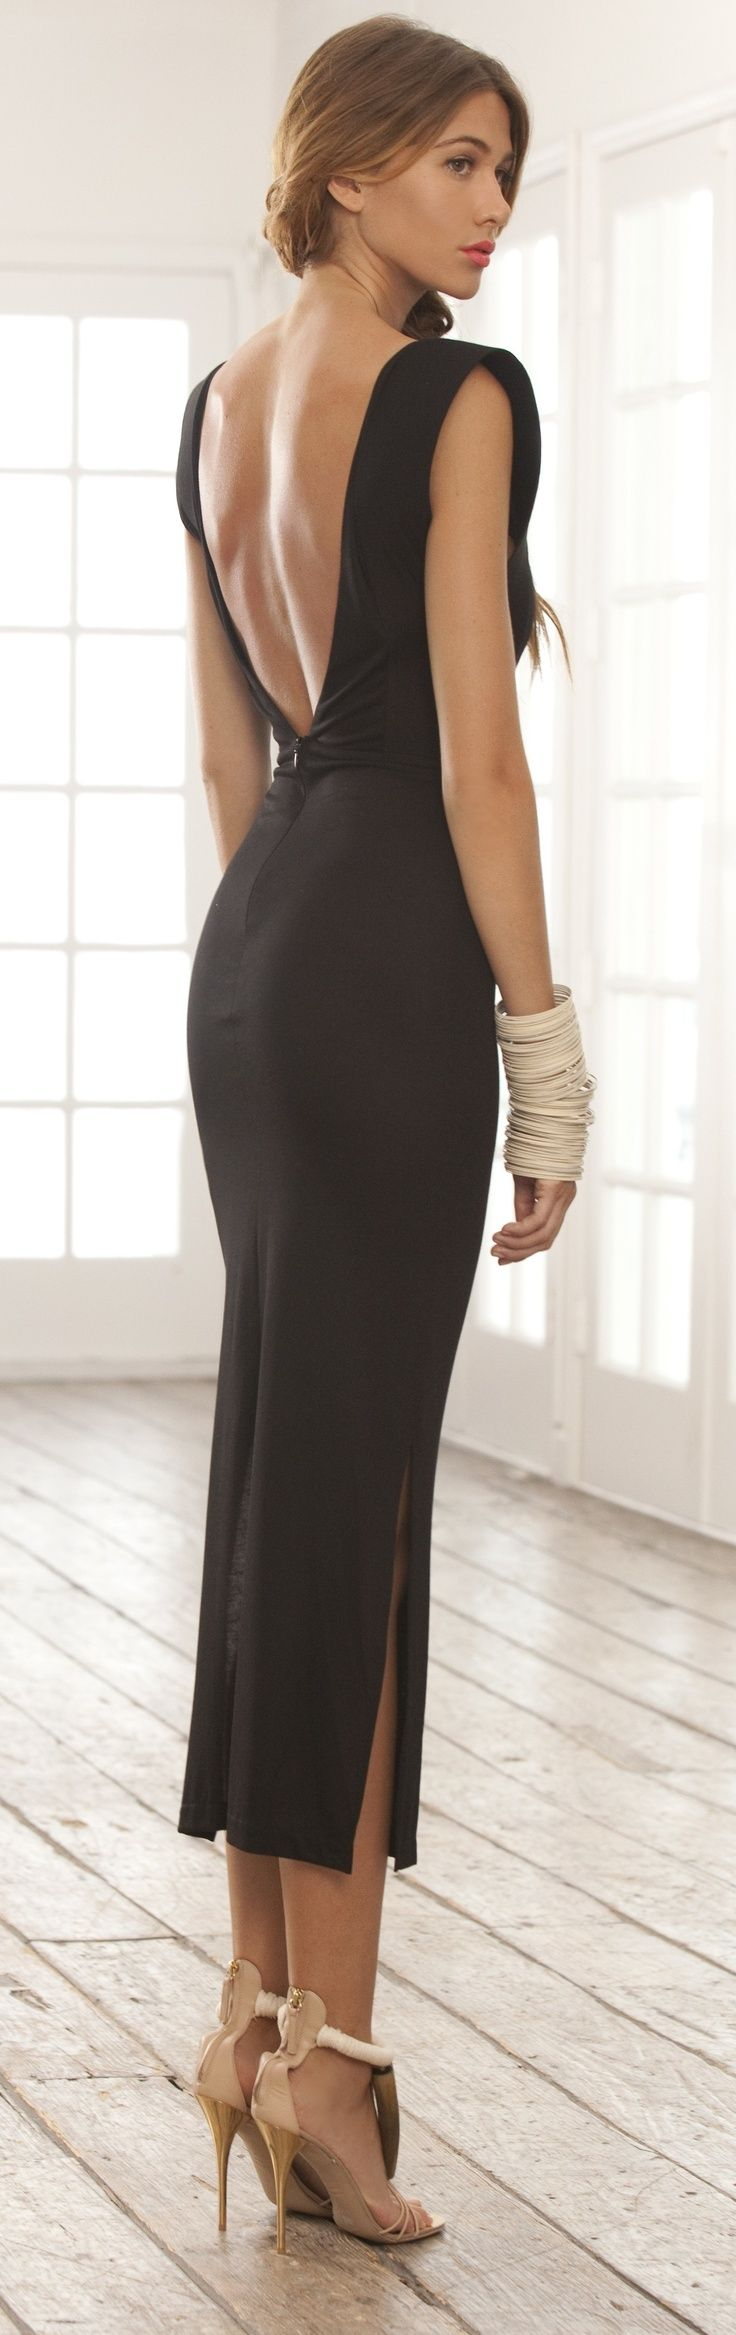 Classic Back Open Party Dress with High Heels.